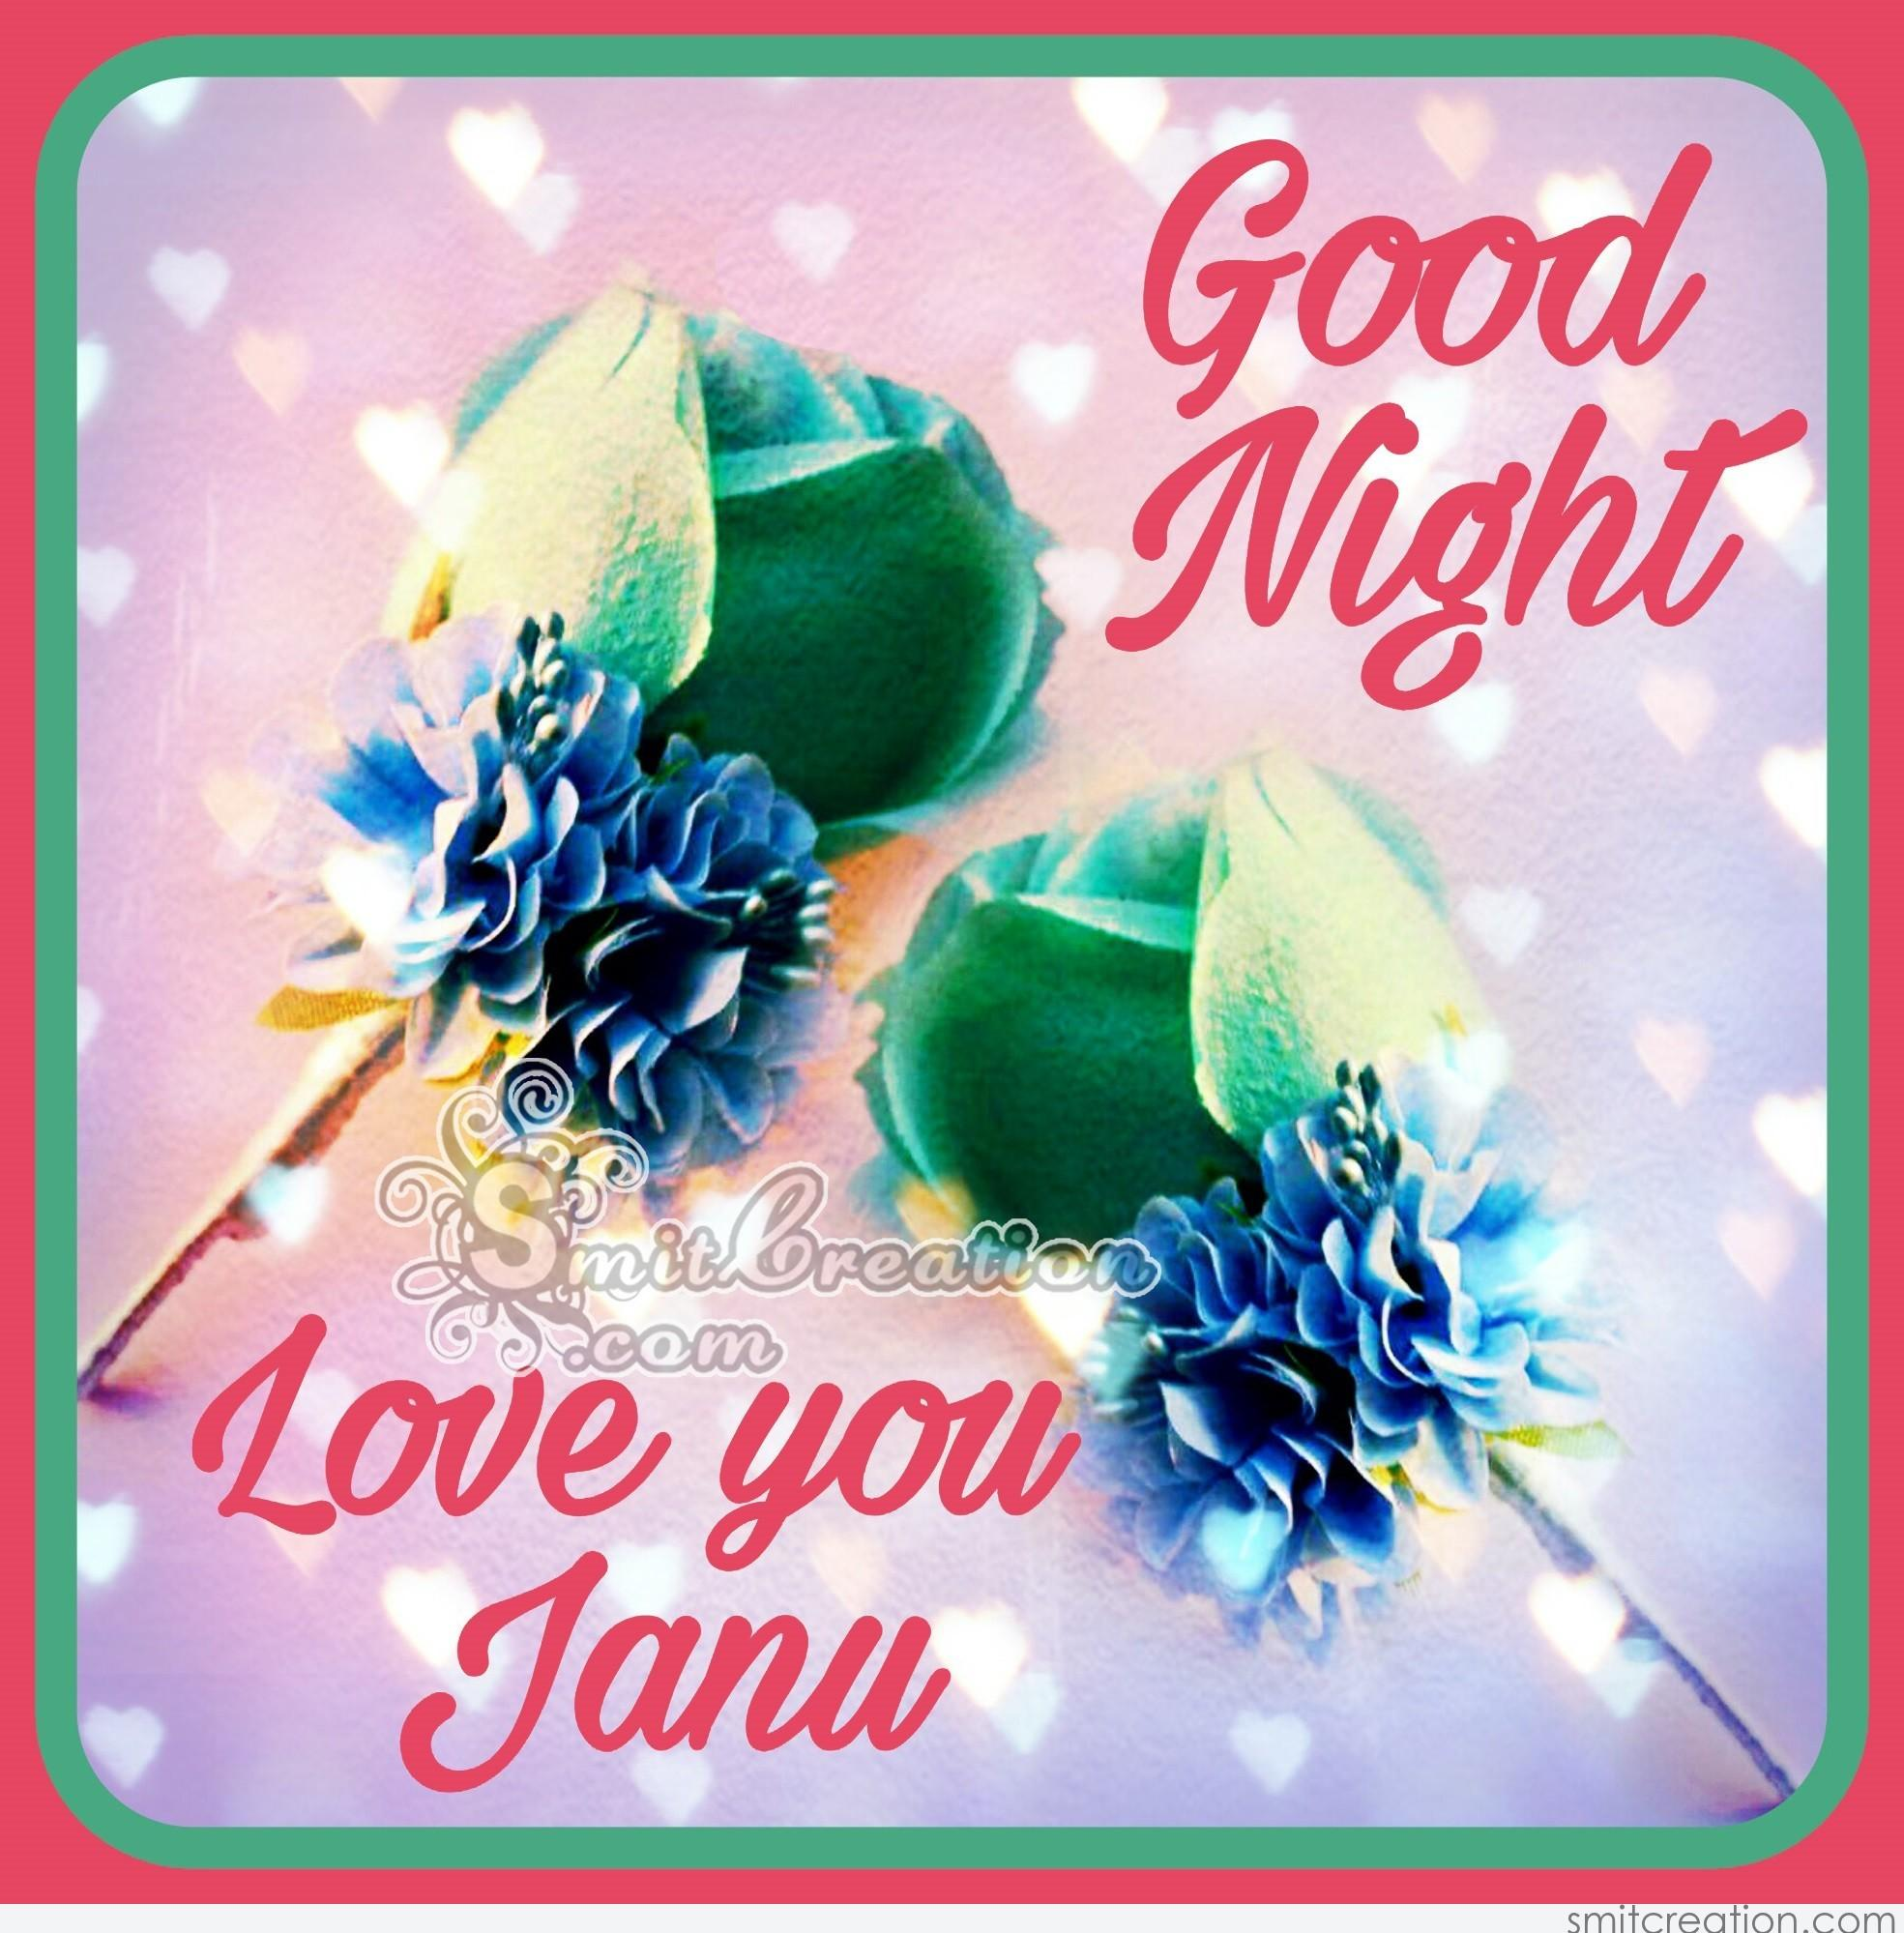 I Love You Janu Name Wallpaper : I Love You Janu Images Wallpaper Images